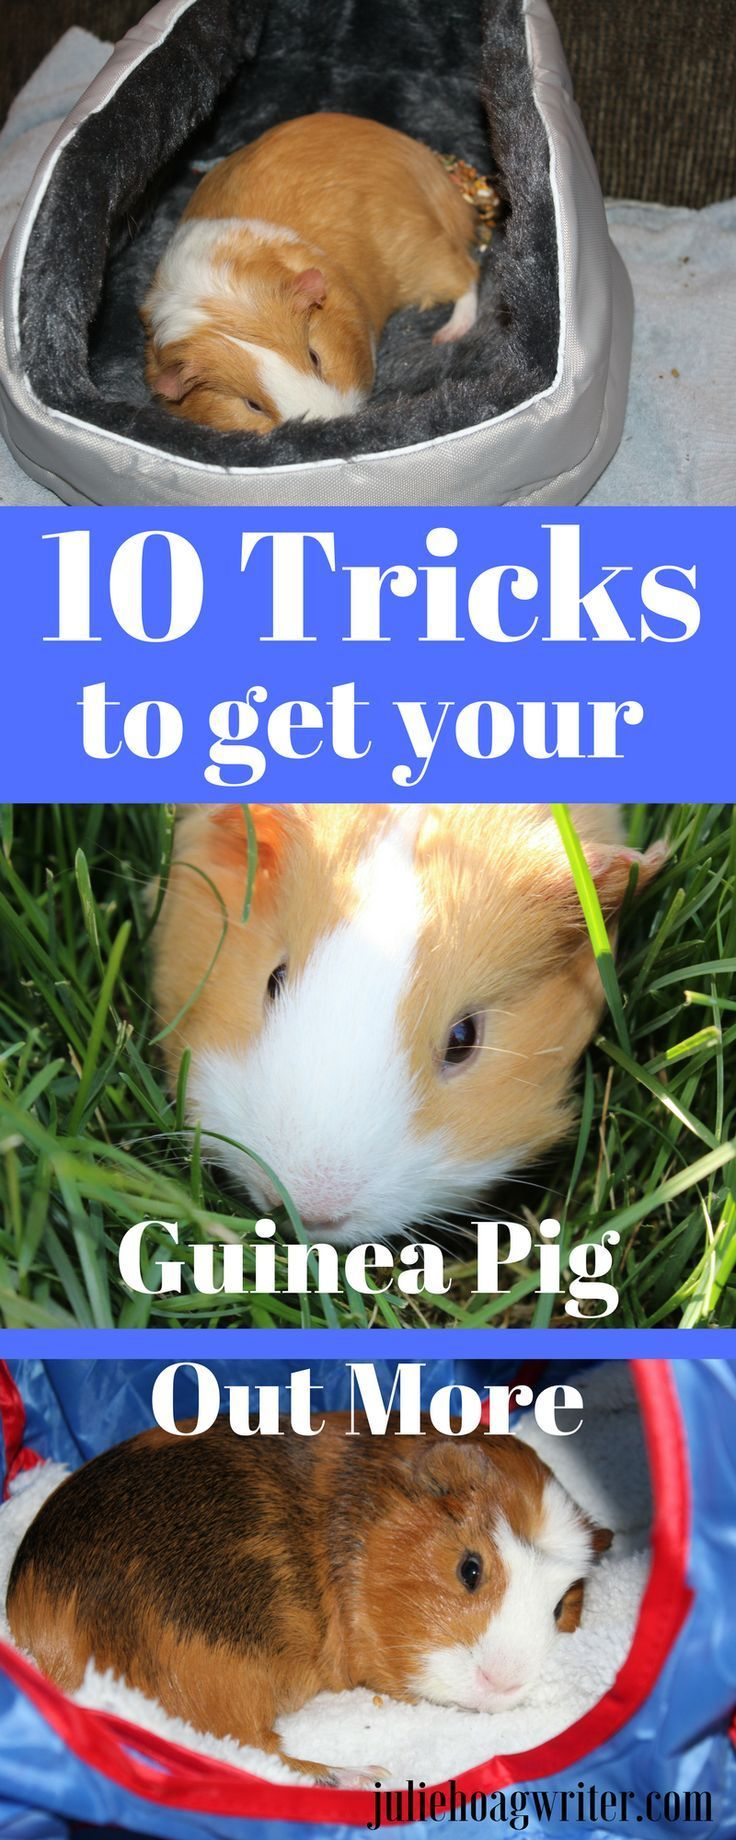 24 best Cavies images on Pinterest | Guinea pigs, Pig stuff and Pigs